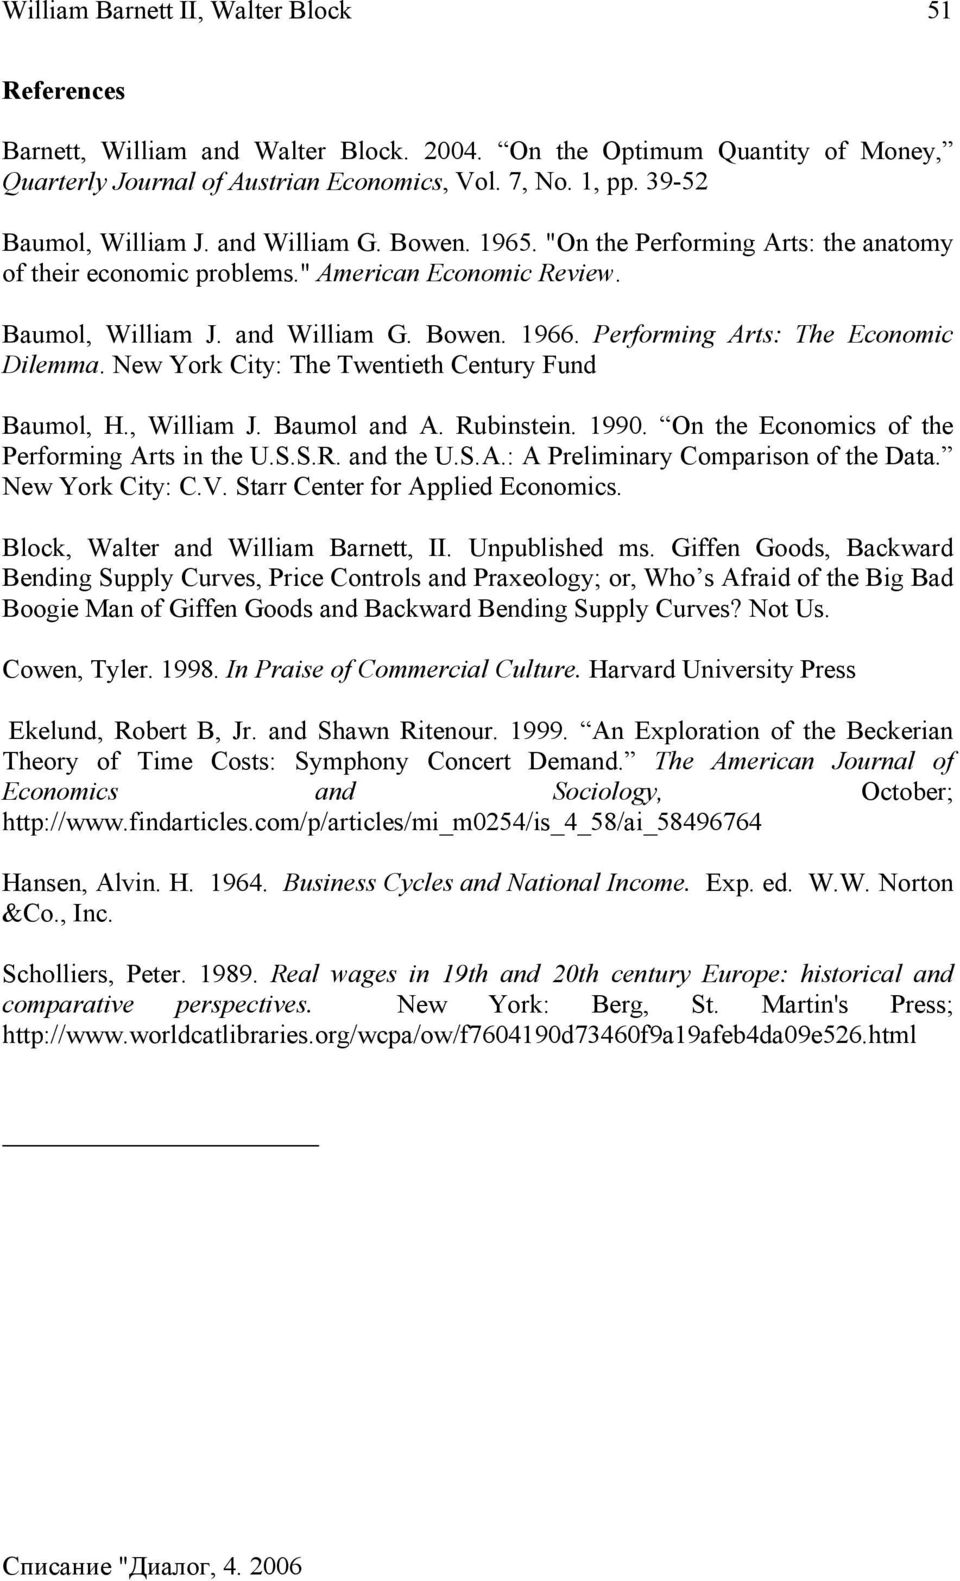 New York City: The Twentieth Century Fund Baumol, H., William J. Baumol and A. Rubinstein. 1990. On the Economics of the Performing Arts in the U.S.S.R. and the U.S.A.: A Preliminary Comparison of the Data.